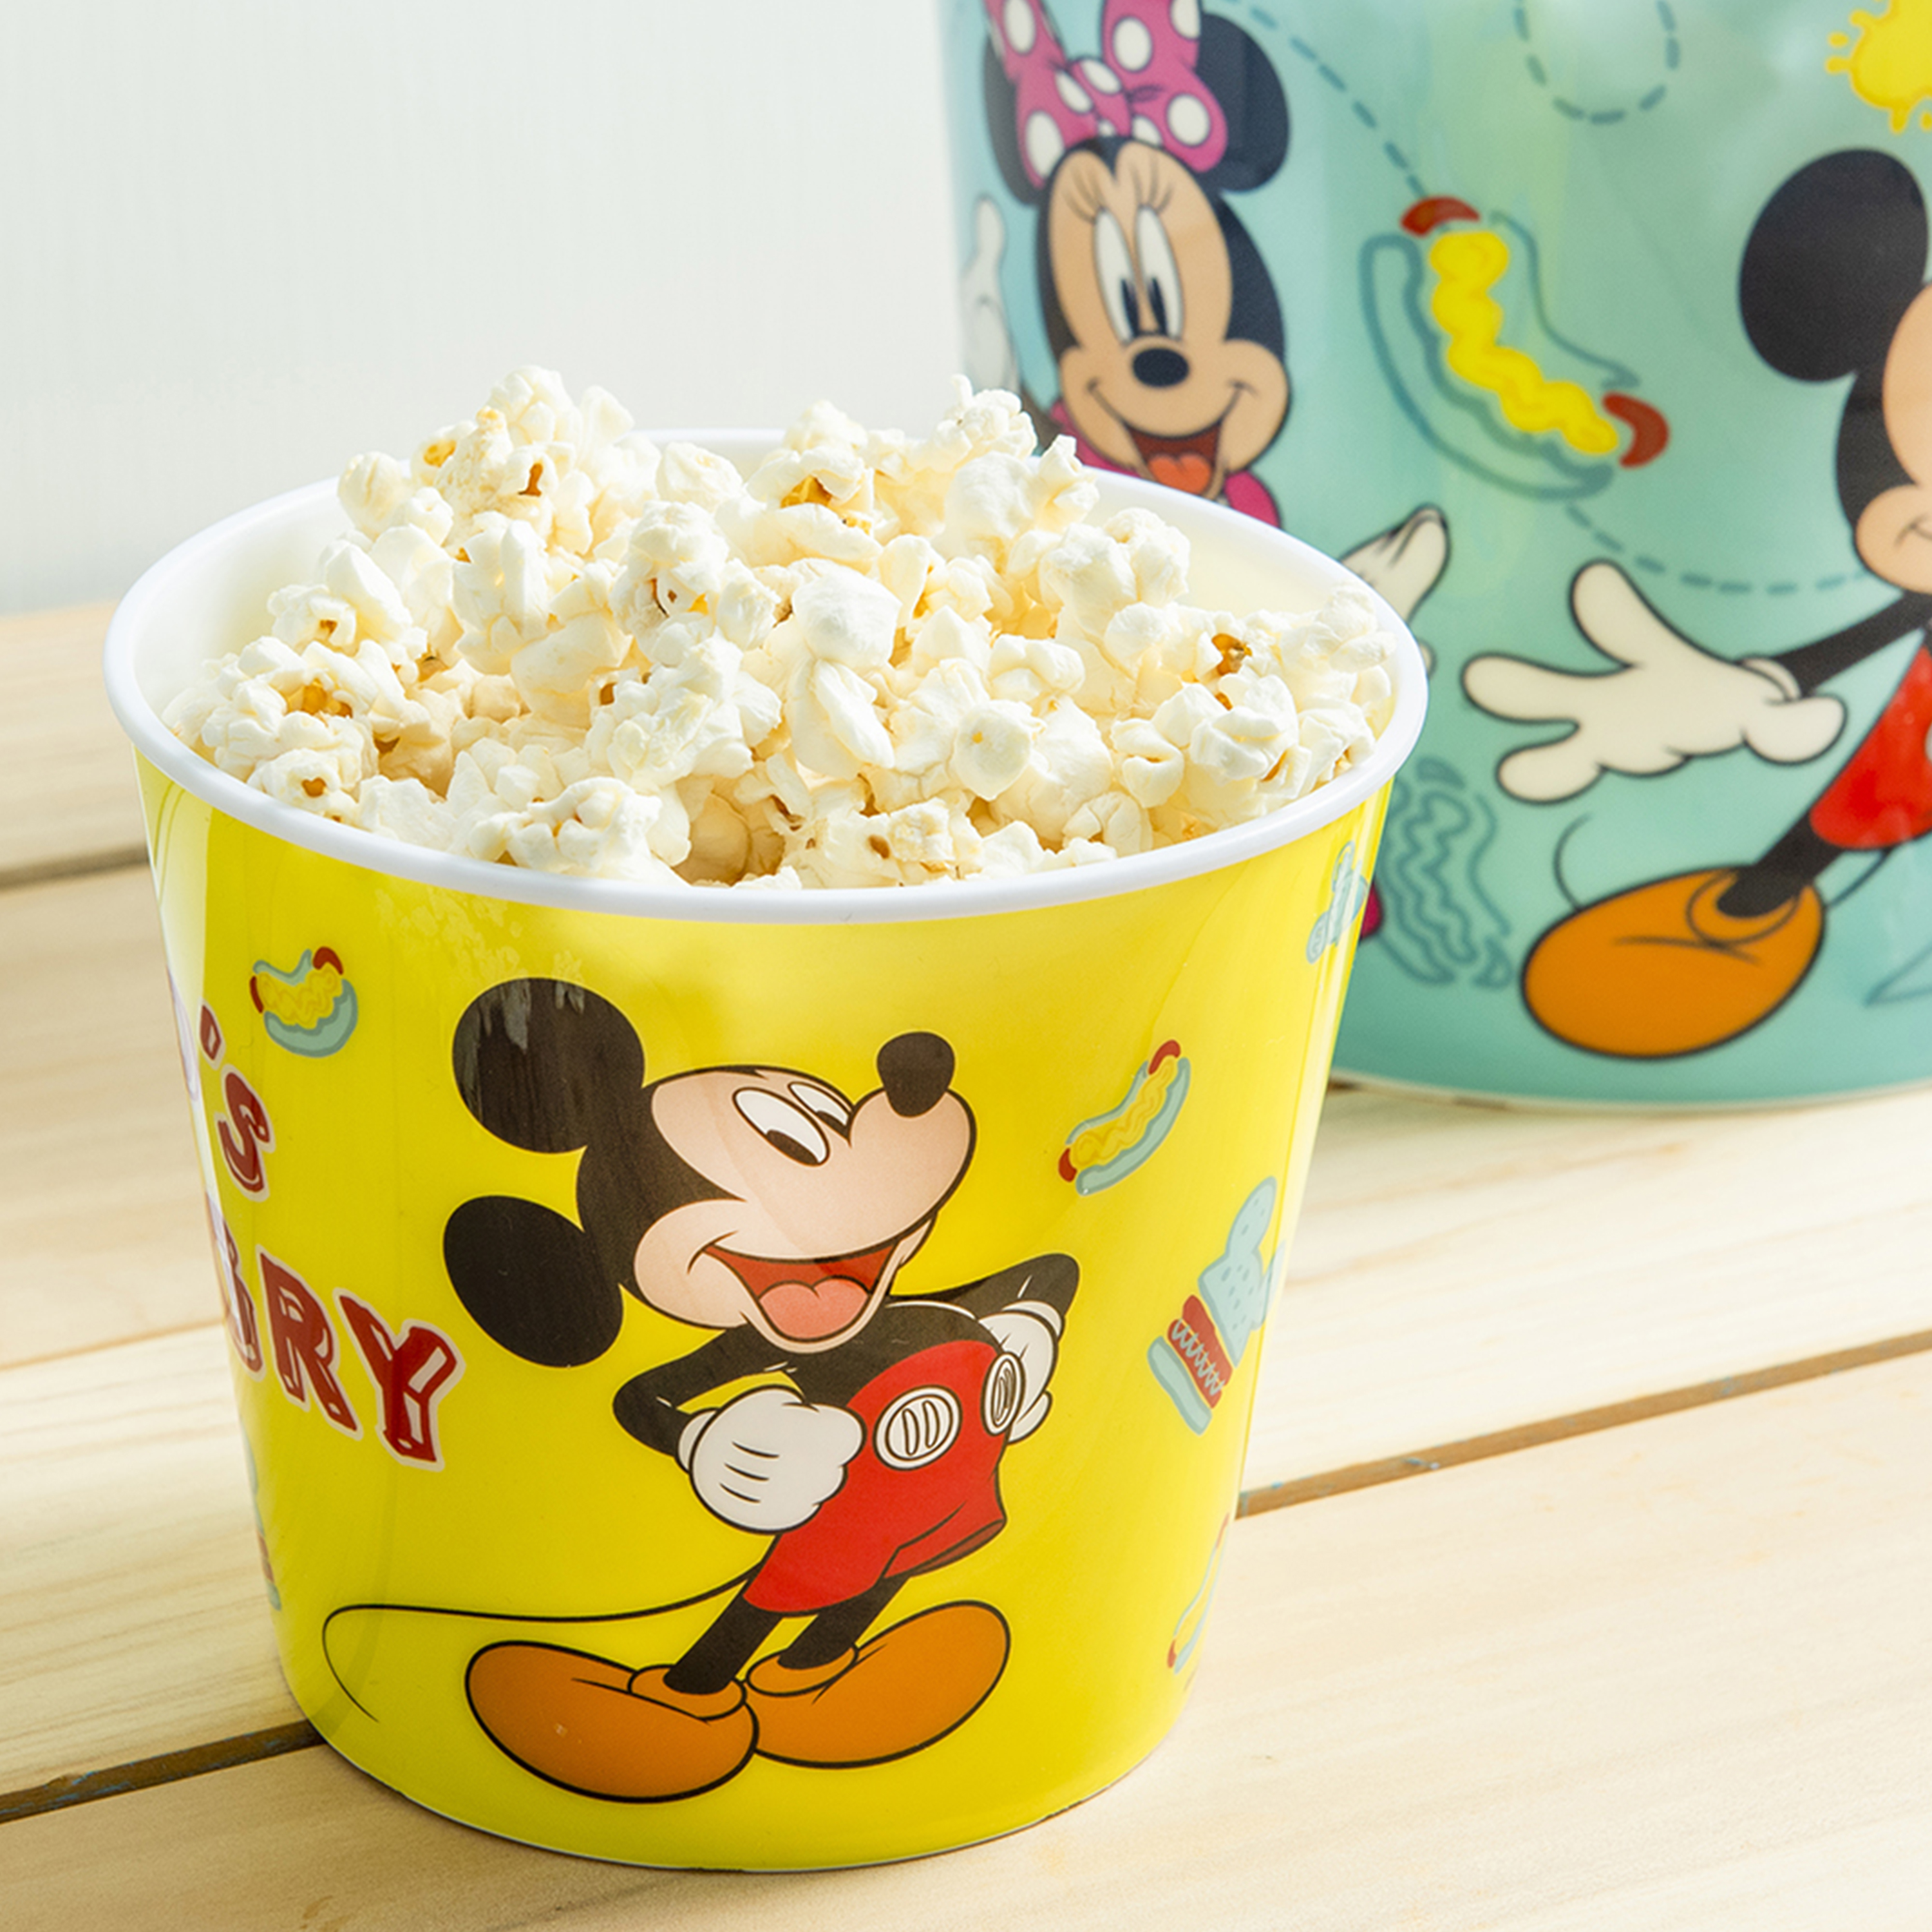 Disney Plastic Popcorn Container and Bowls, Mickey Mouse and Minnie Mouse, 5-piece set slideshow image 4